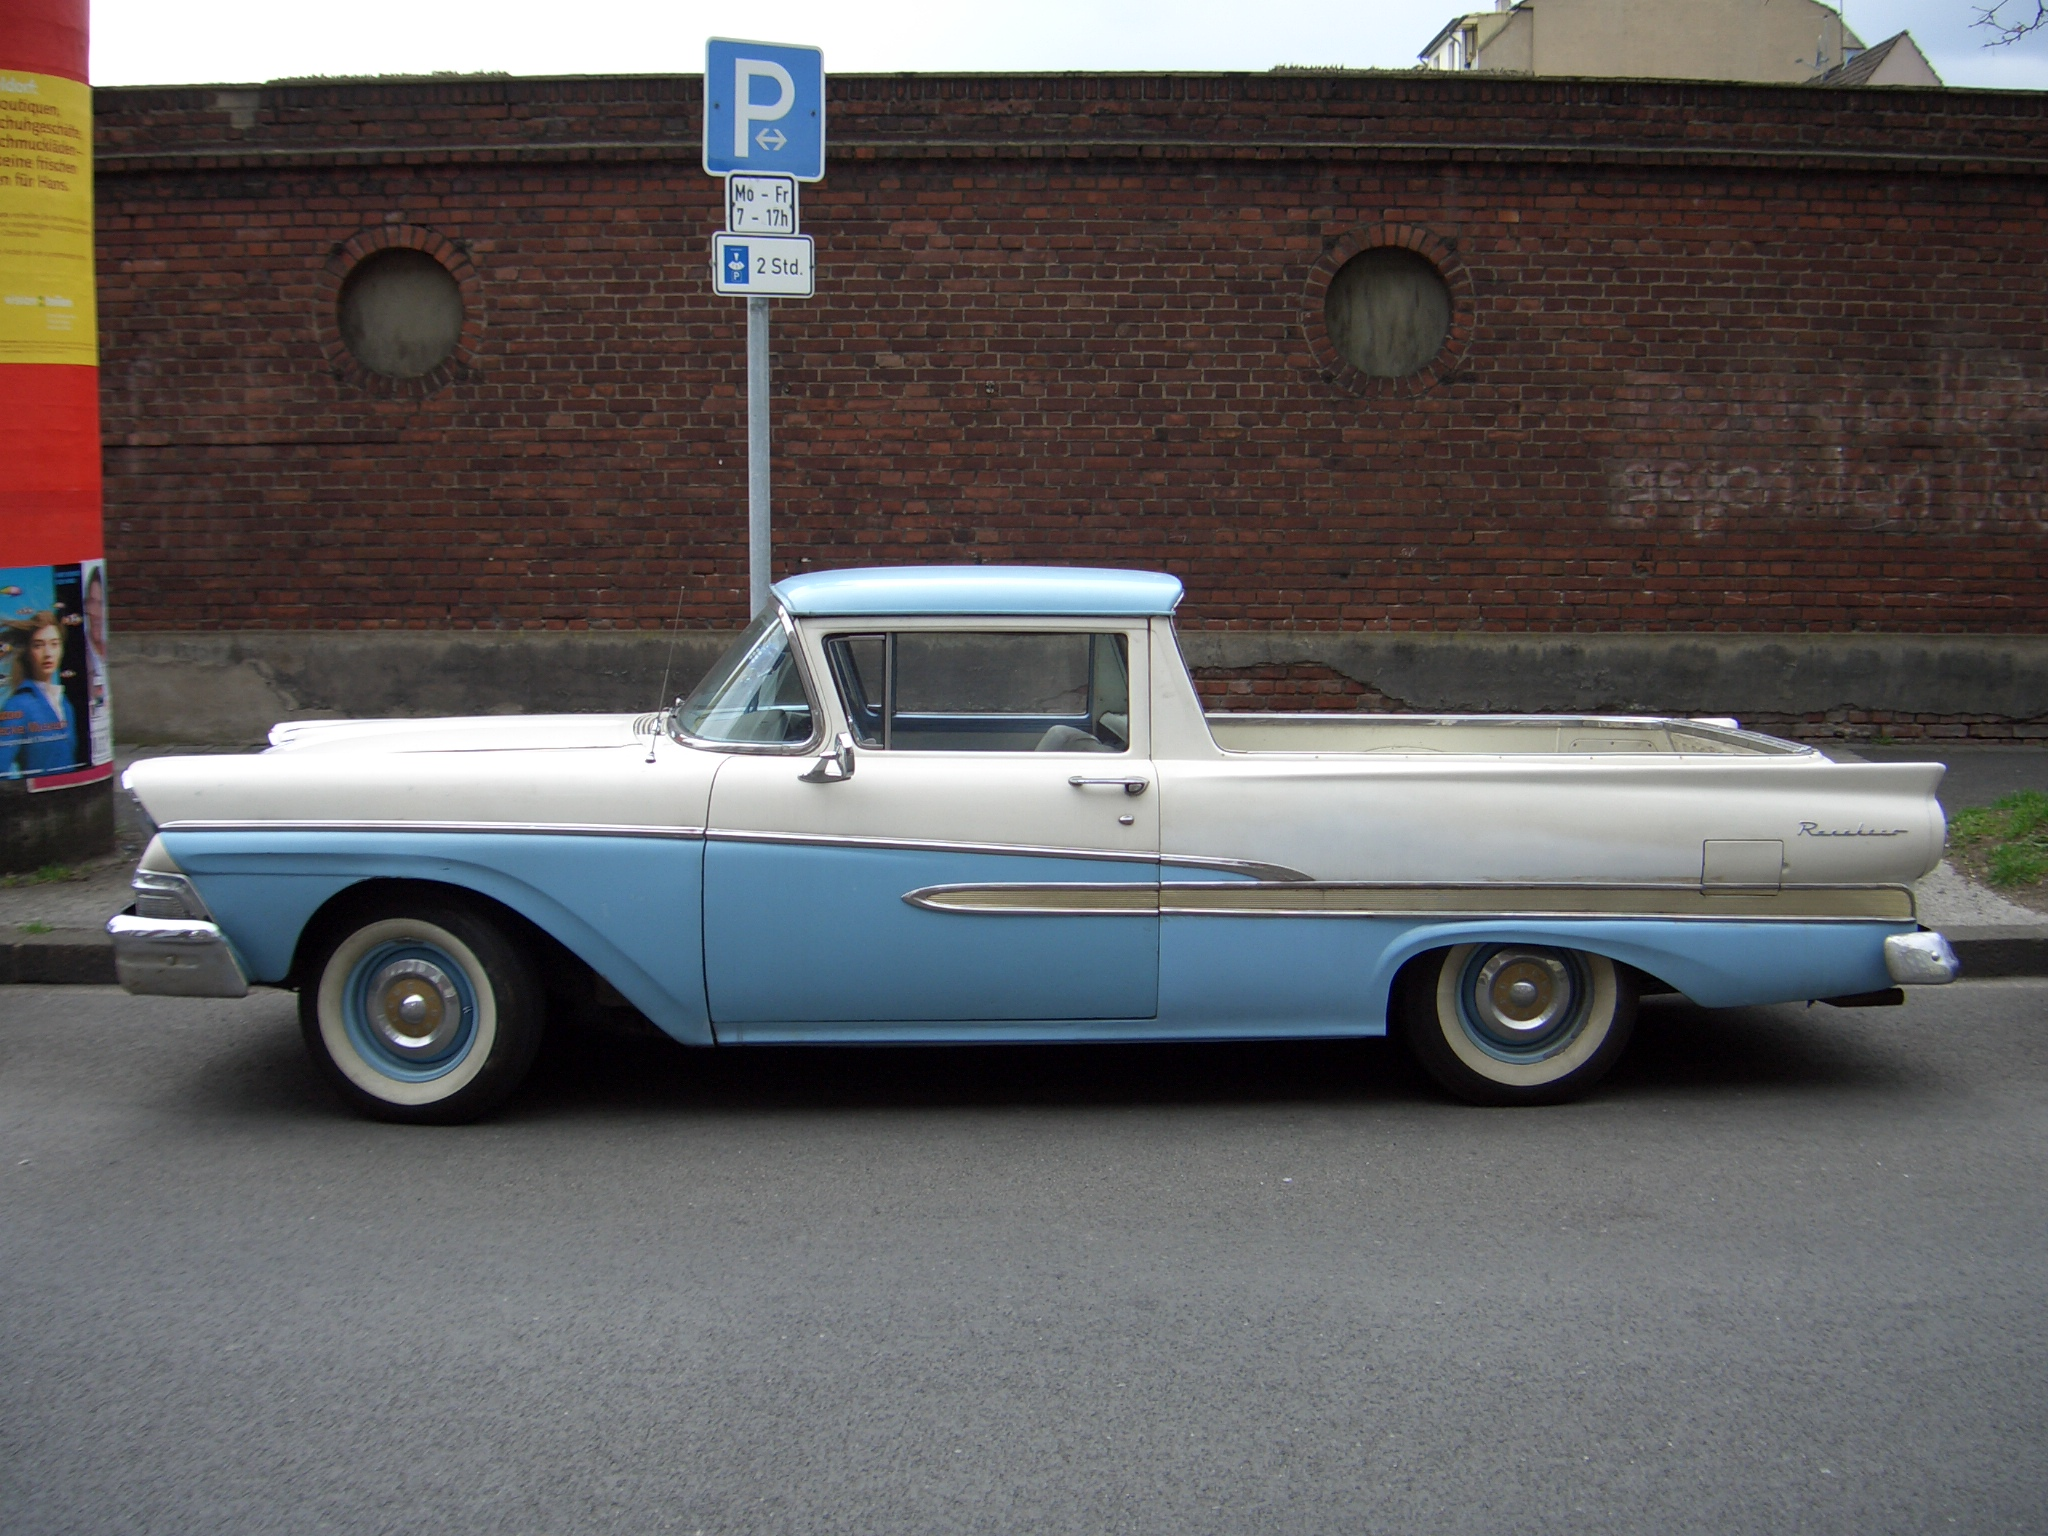 File:Ford Ranchero 1958 side 2006-04-08 A.jpg